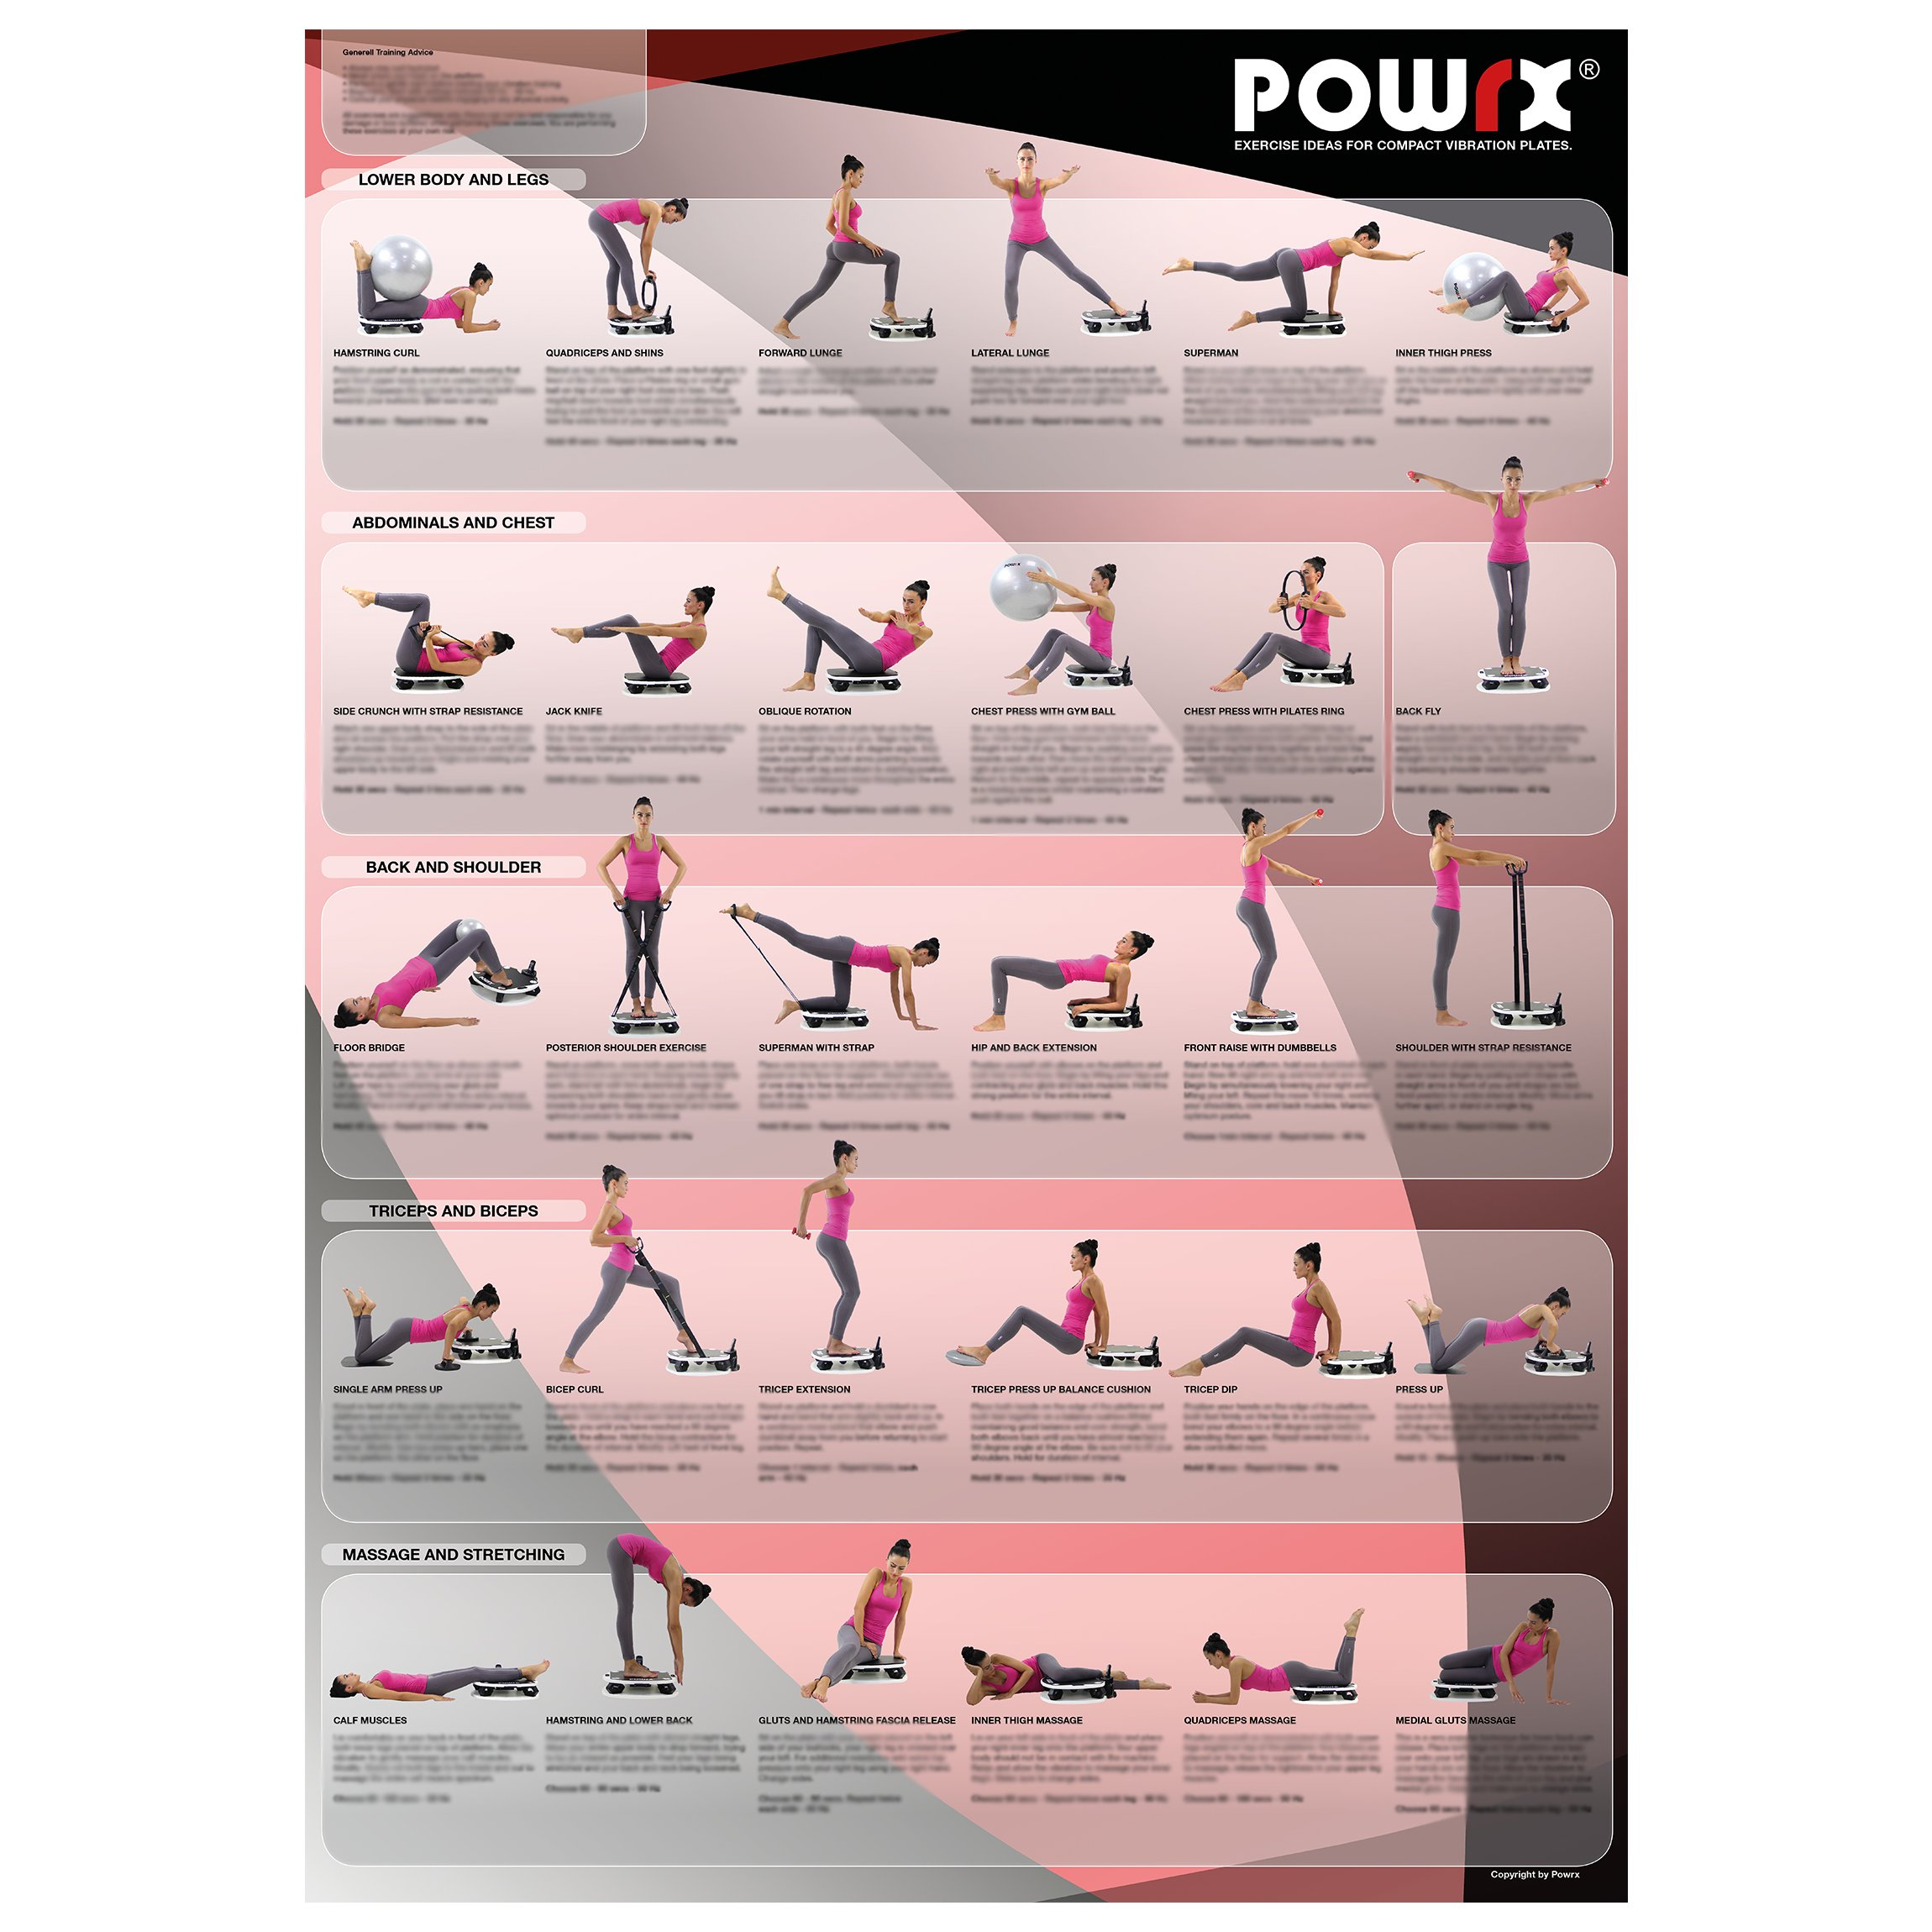 Whole Body Vibration Training Chart for Portable Vibration Fitness Machines, Now with online video support.